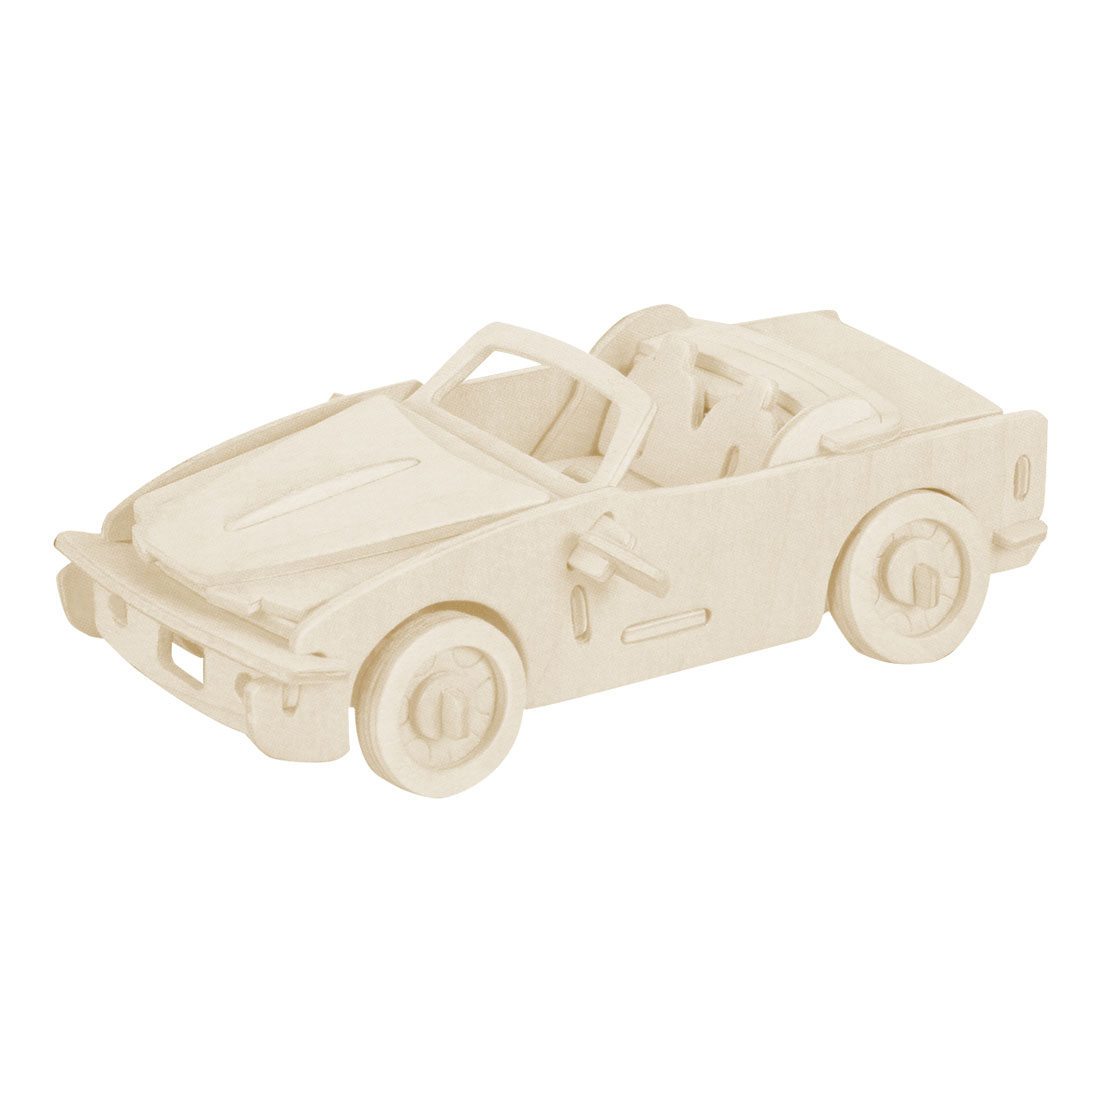 Self Assembly Car Woodcraft Educational Puzzle Model Toy